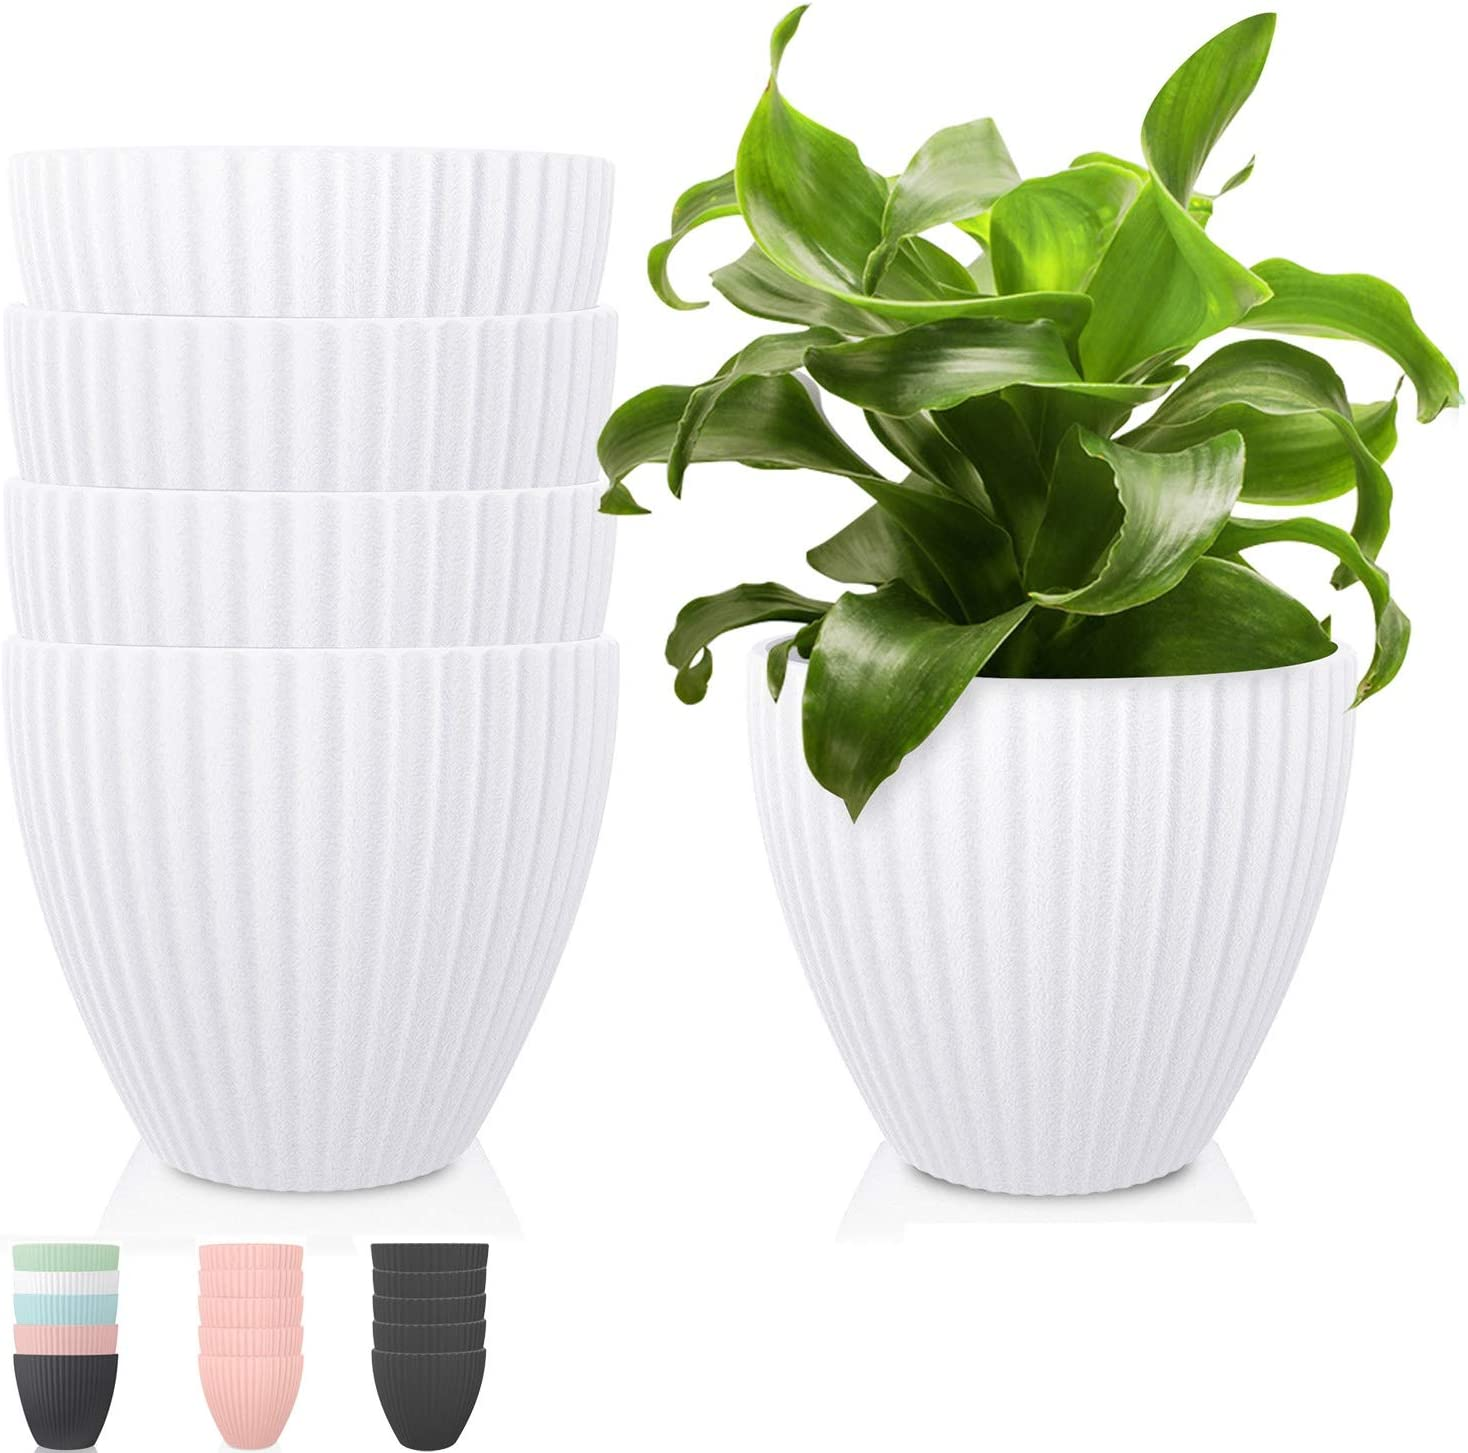 Plastic Planters Indoor Plant Pots - Thick Plastic Planter Pot Modern Decorative Large Gardening Pots for Plants, Flowers, Herbs, Cactus with Drainage Hole, 7 Inch Strip, White